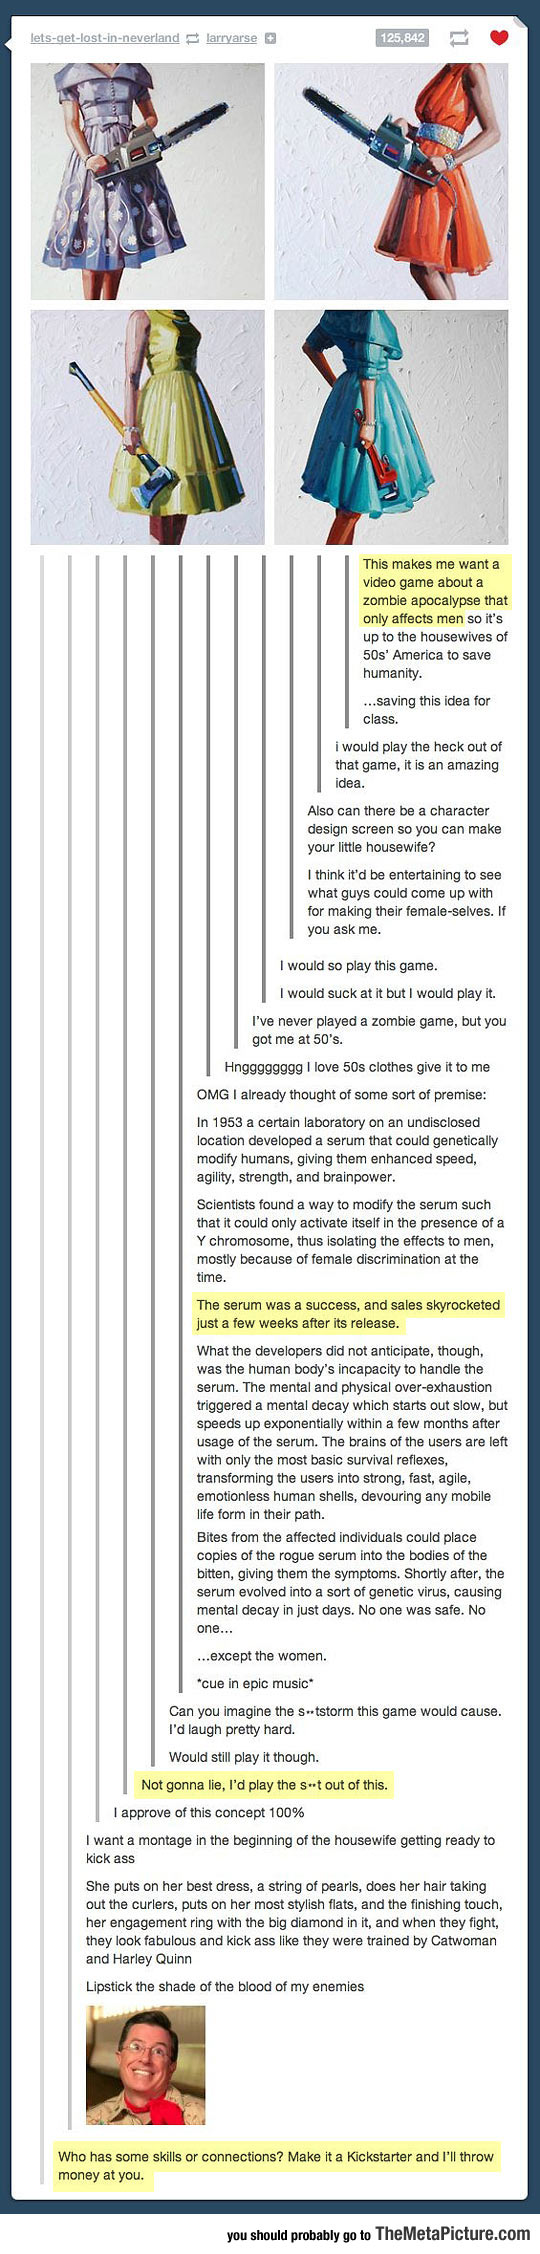 Yes, I Would Totally Play This Game